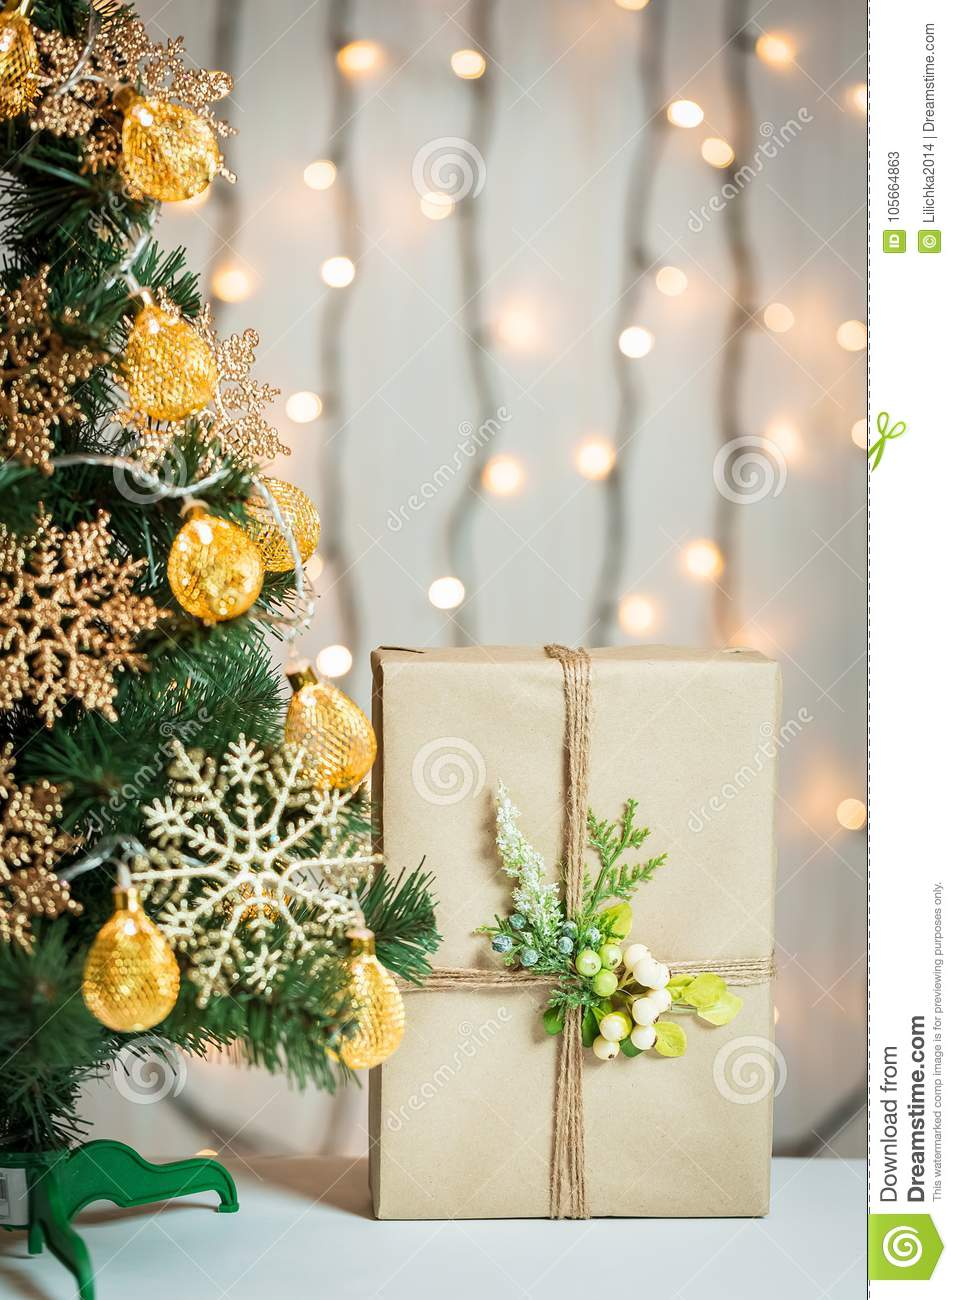 A Christmas Tree Decorated With Snowflakes And A Garland On The ...